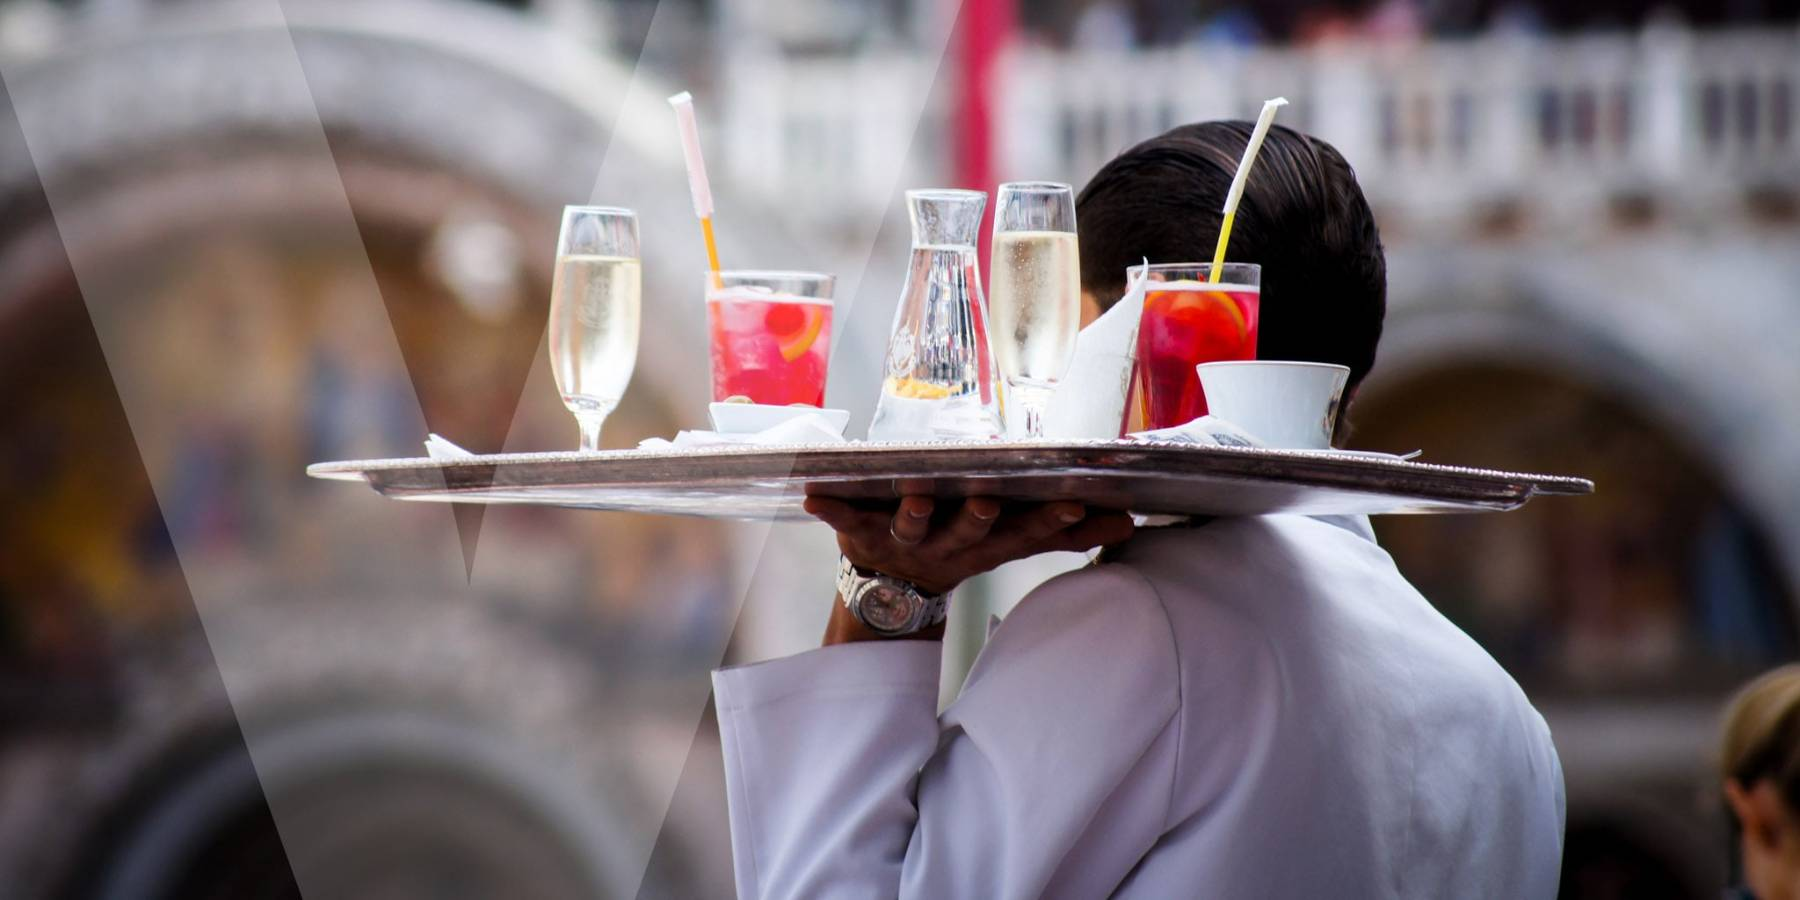 A waiter carrying a service plate full of beverages